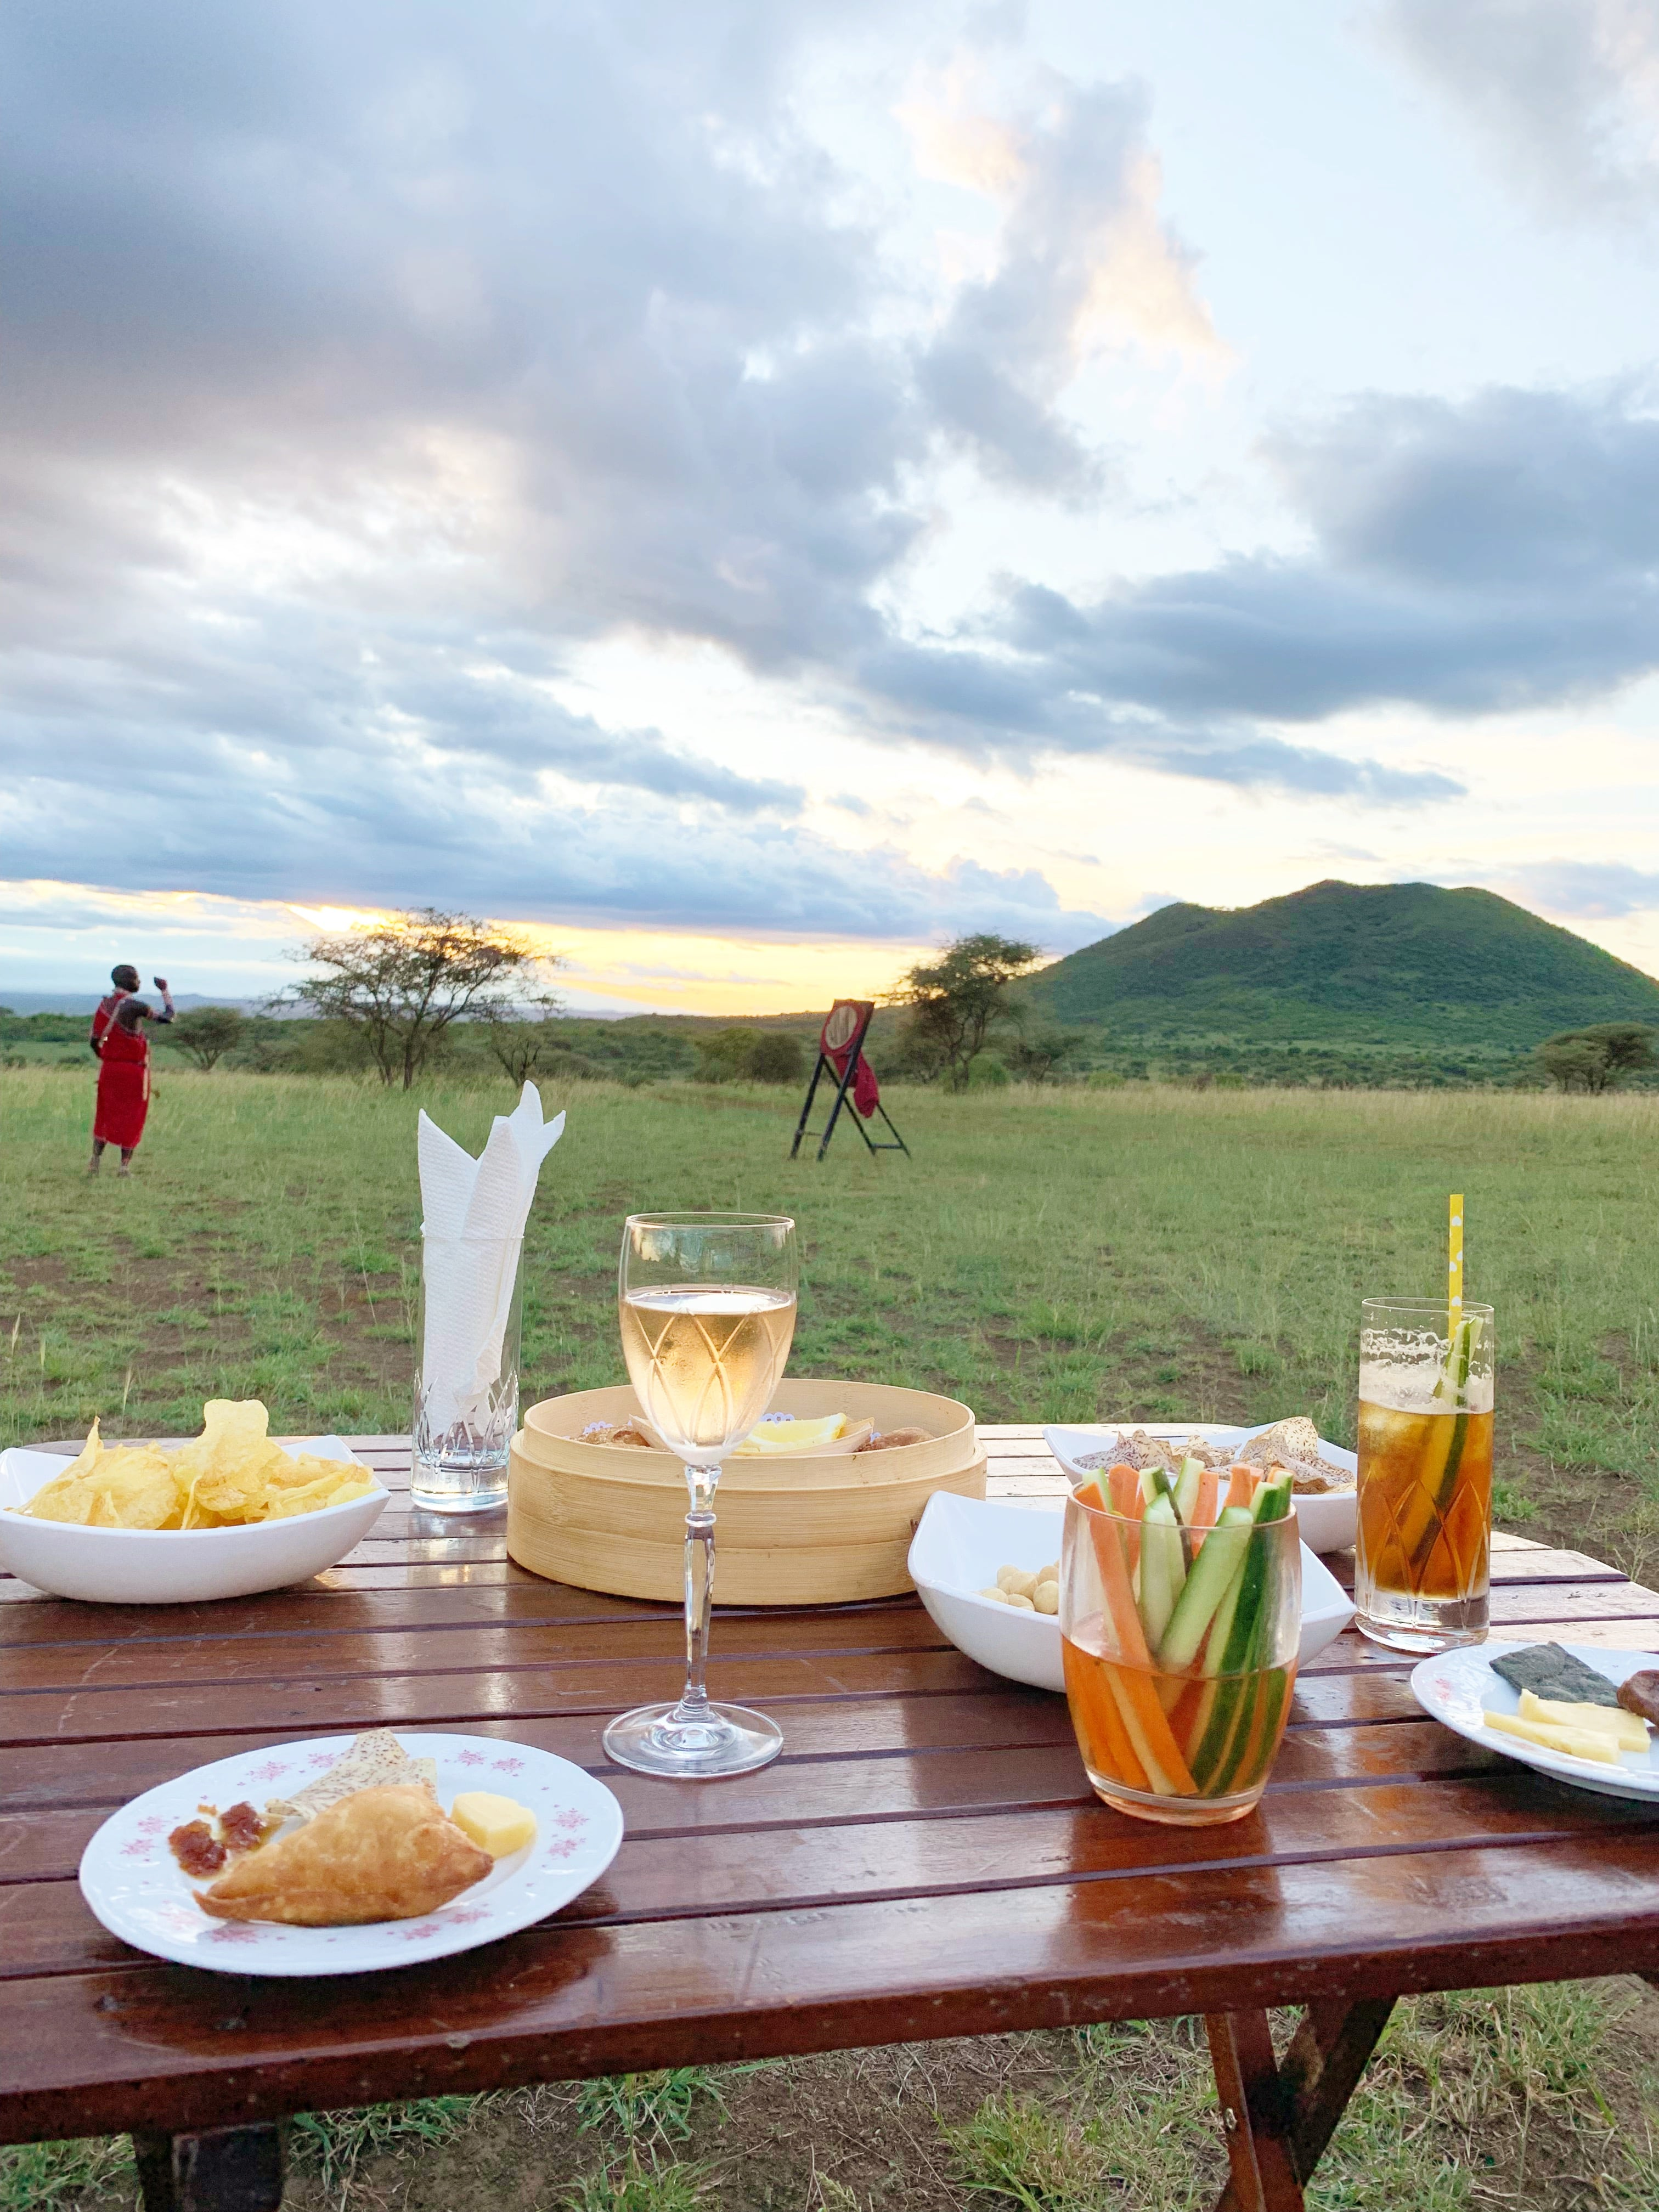 Photo Diary From Tsavo National Park - Photos to inspire a visit to Tsavo West National Park, the western half of Kenya's largest national park! | Tsavo National Park - Finch Hattons - Tsavo West National Park - Kenya National Parks - Tsavo Kenya - Tsavo East National Park